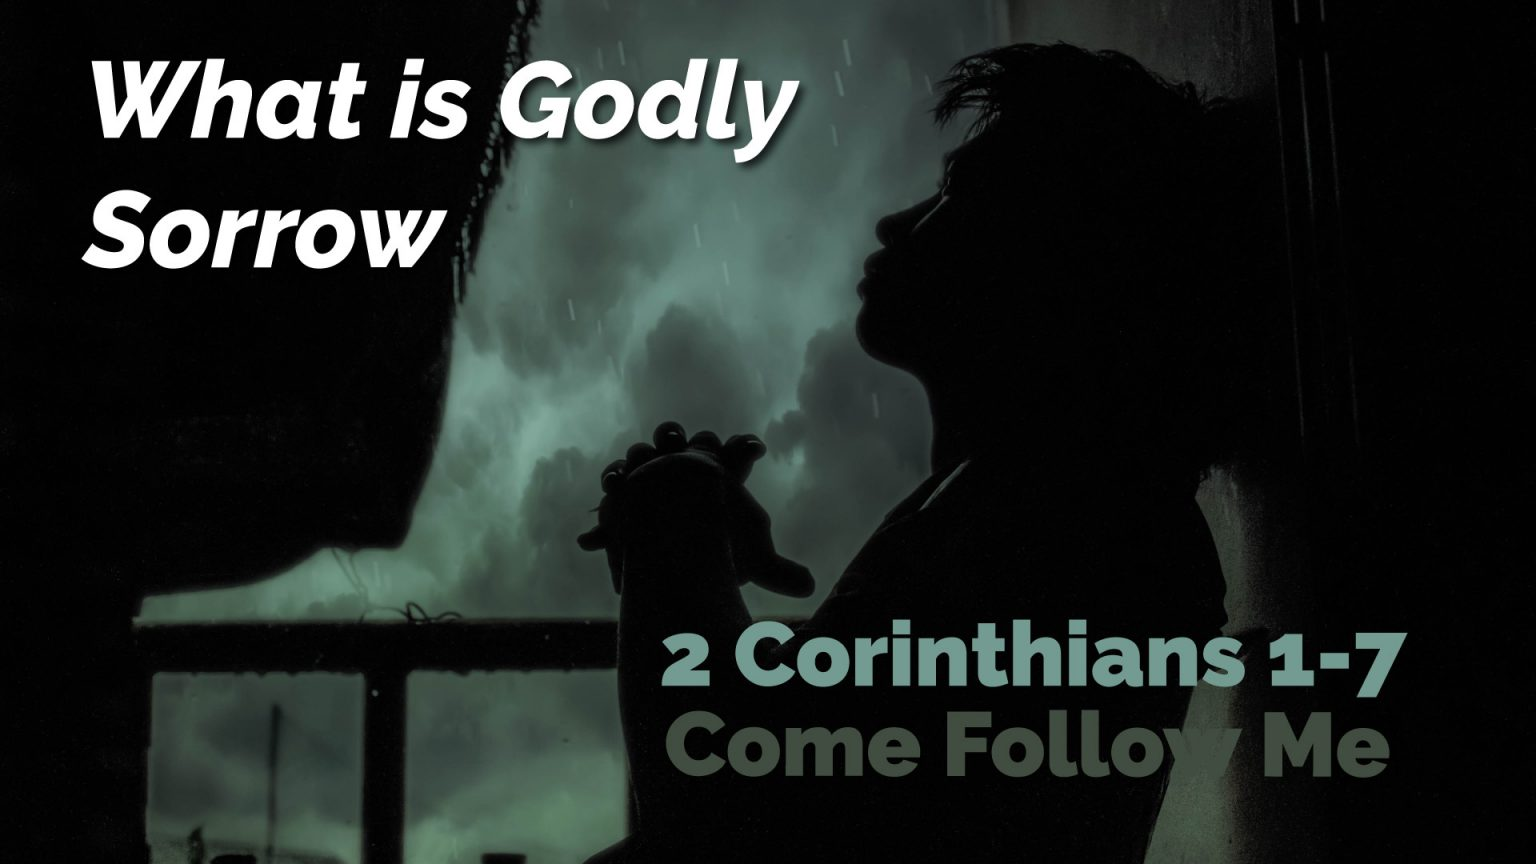 2 Corinthians 1-7 ~ Come Follow Me